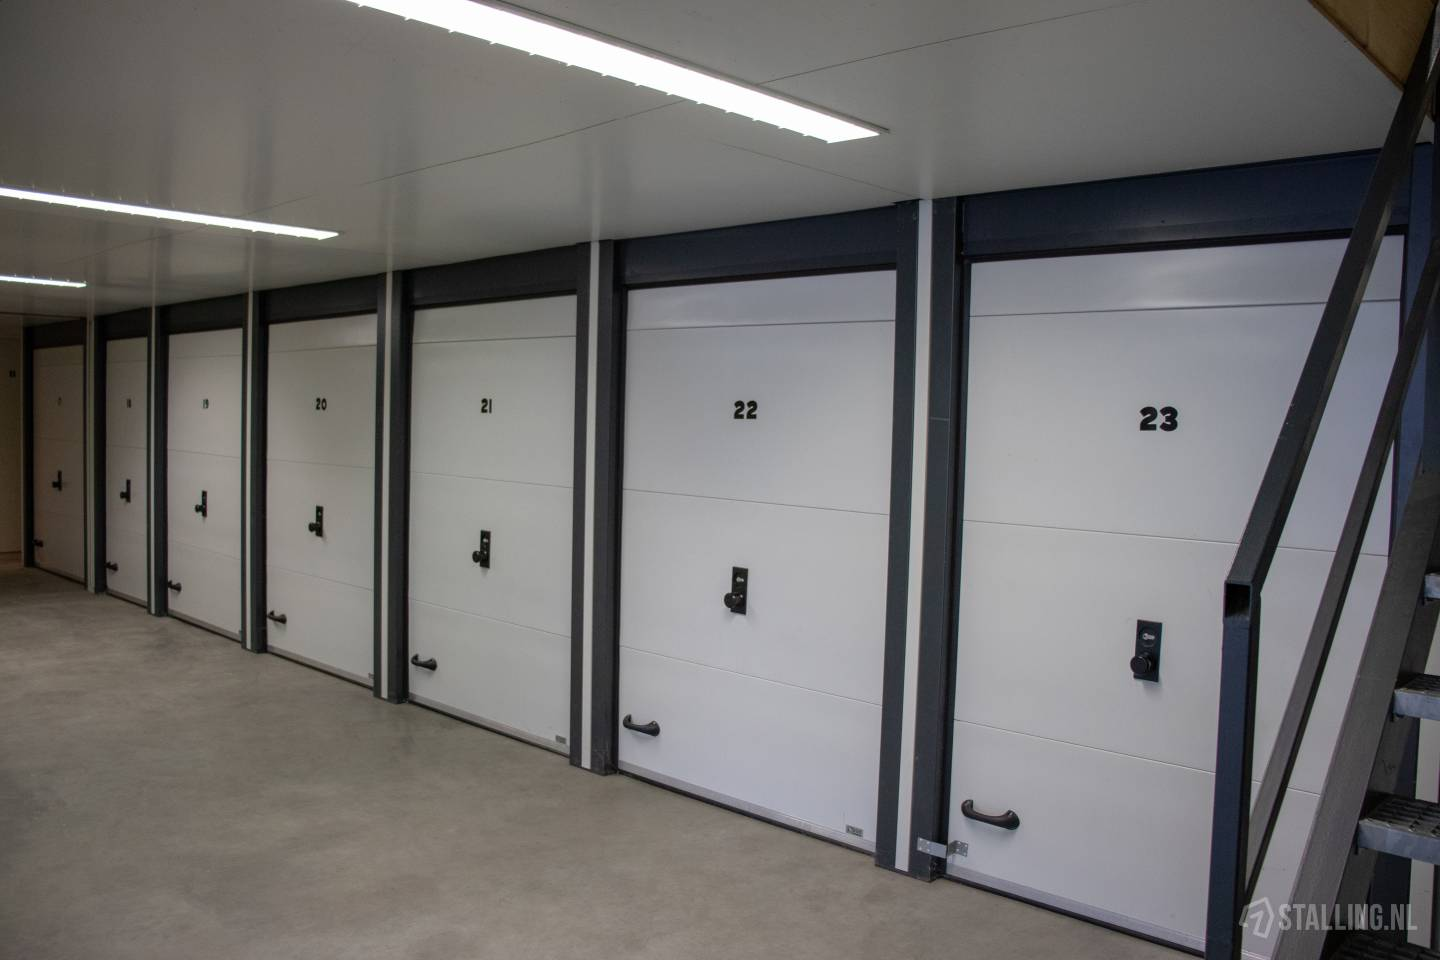 storage world opslagbox noord-brabant